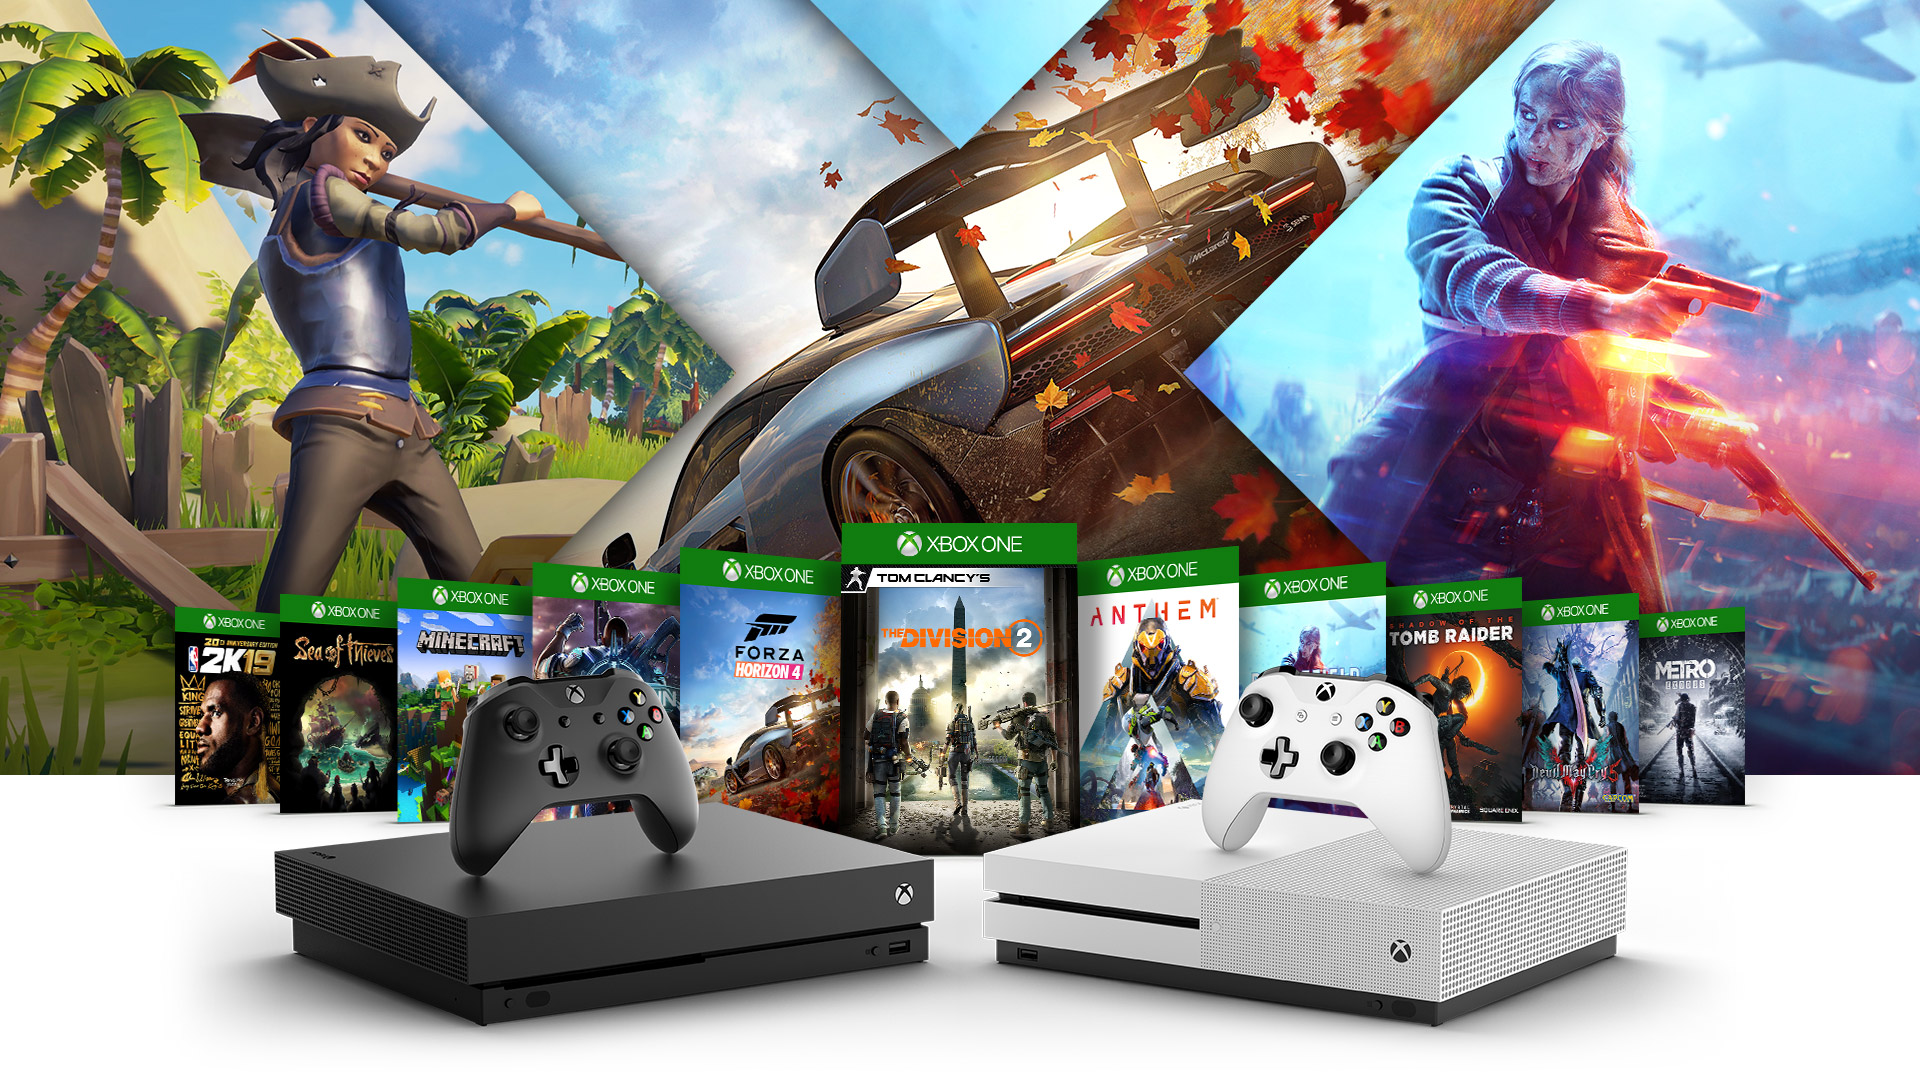 Вид сбоку на консоли Xbox One X, Xbox One S и Xbox One S All Digital Edition, окруженные обложками игр Crackdown 3, Sea of Thieves, Minecraft, Madden 19, 2K19, Forza Horizon 4, Fallout 76, Battlefield Five, Shadow of the Tomb Raider, PlayerUnknown Battlegrounds и State of Decay 2